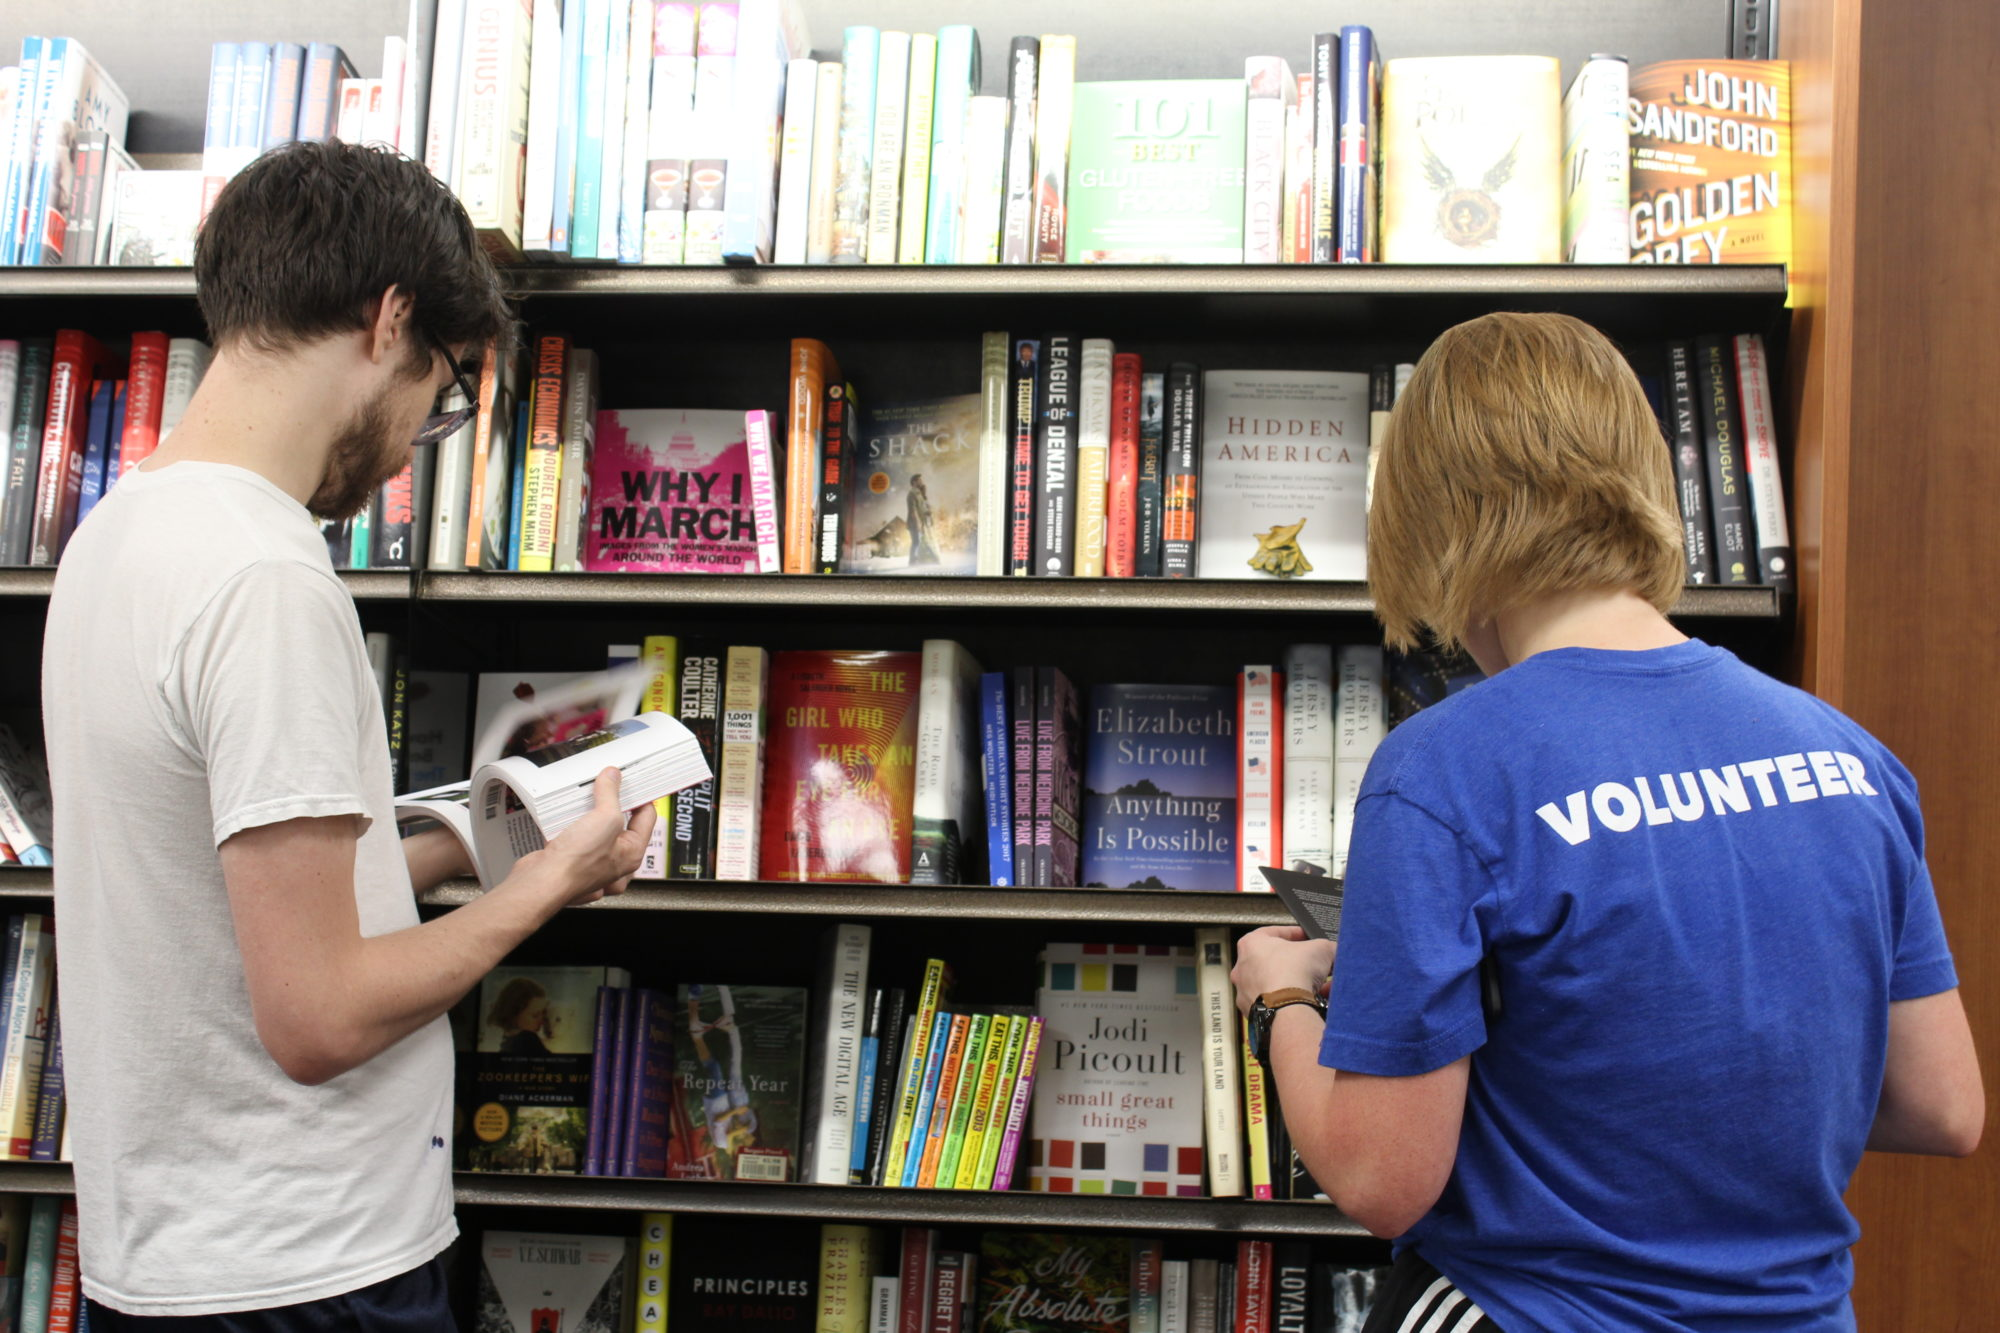 What You Need to Know About Your UCO Textbook Rentals Amid COVID-19